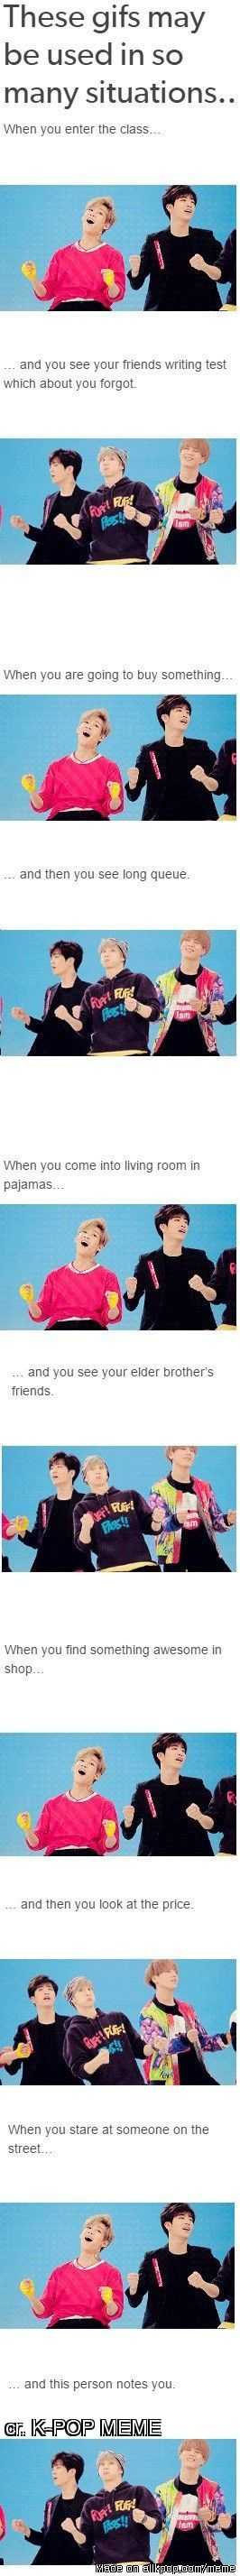 Used in many ways | allkpop Meme Center